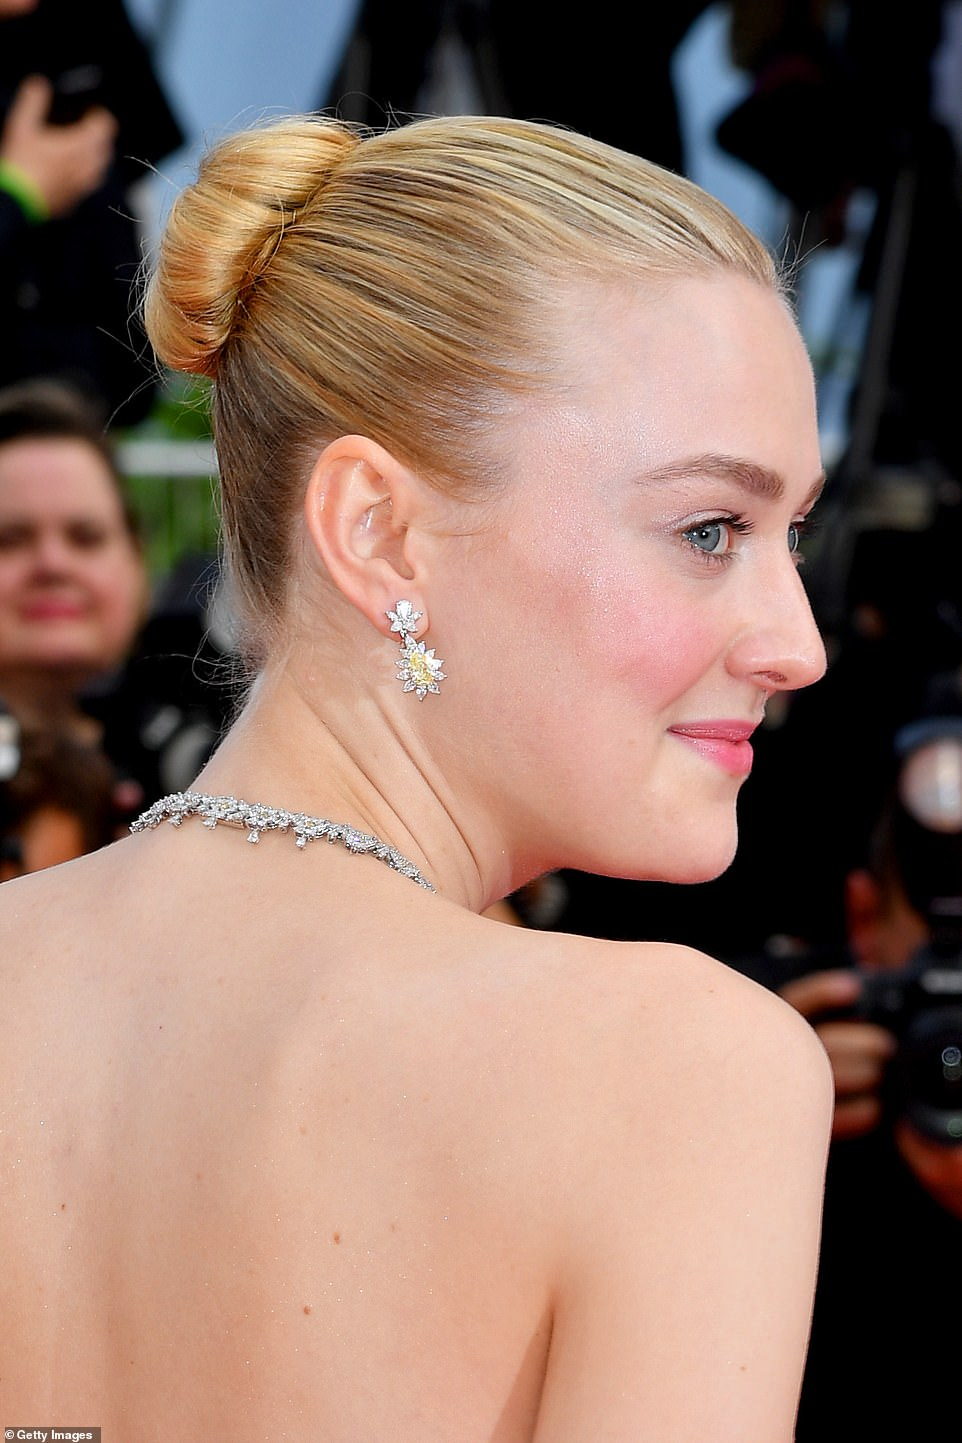 Glamorous: Dakota also added some extra sparkled with some delicate flower jewelled earrings and a matching necklace